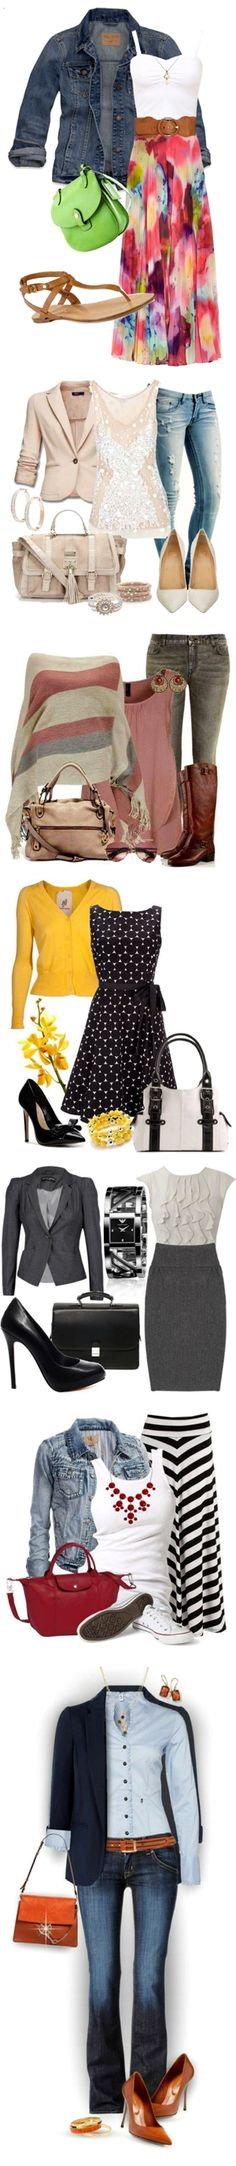 Adorable outfits Classy, Fashion Outfits, Image, Dapper Gentleman, Chic, Elegant